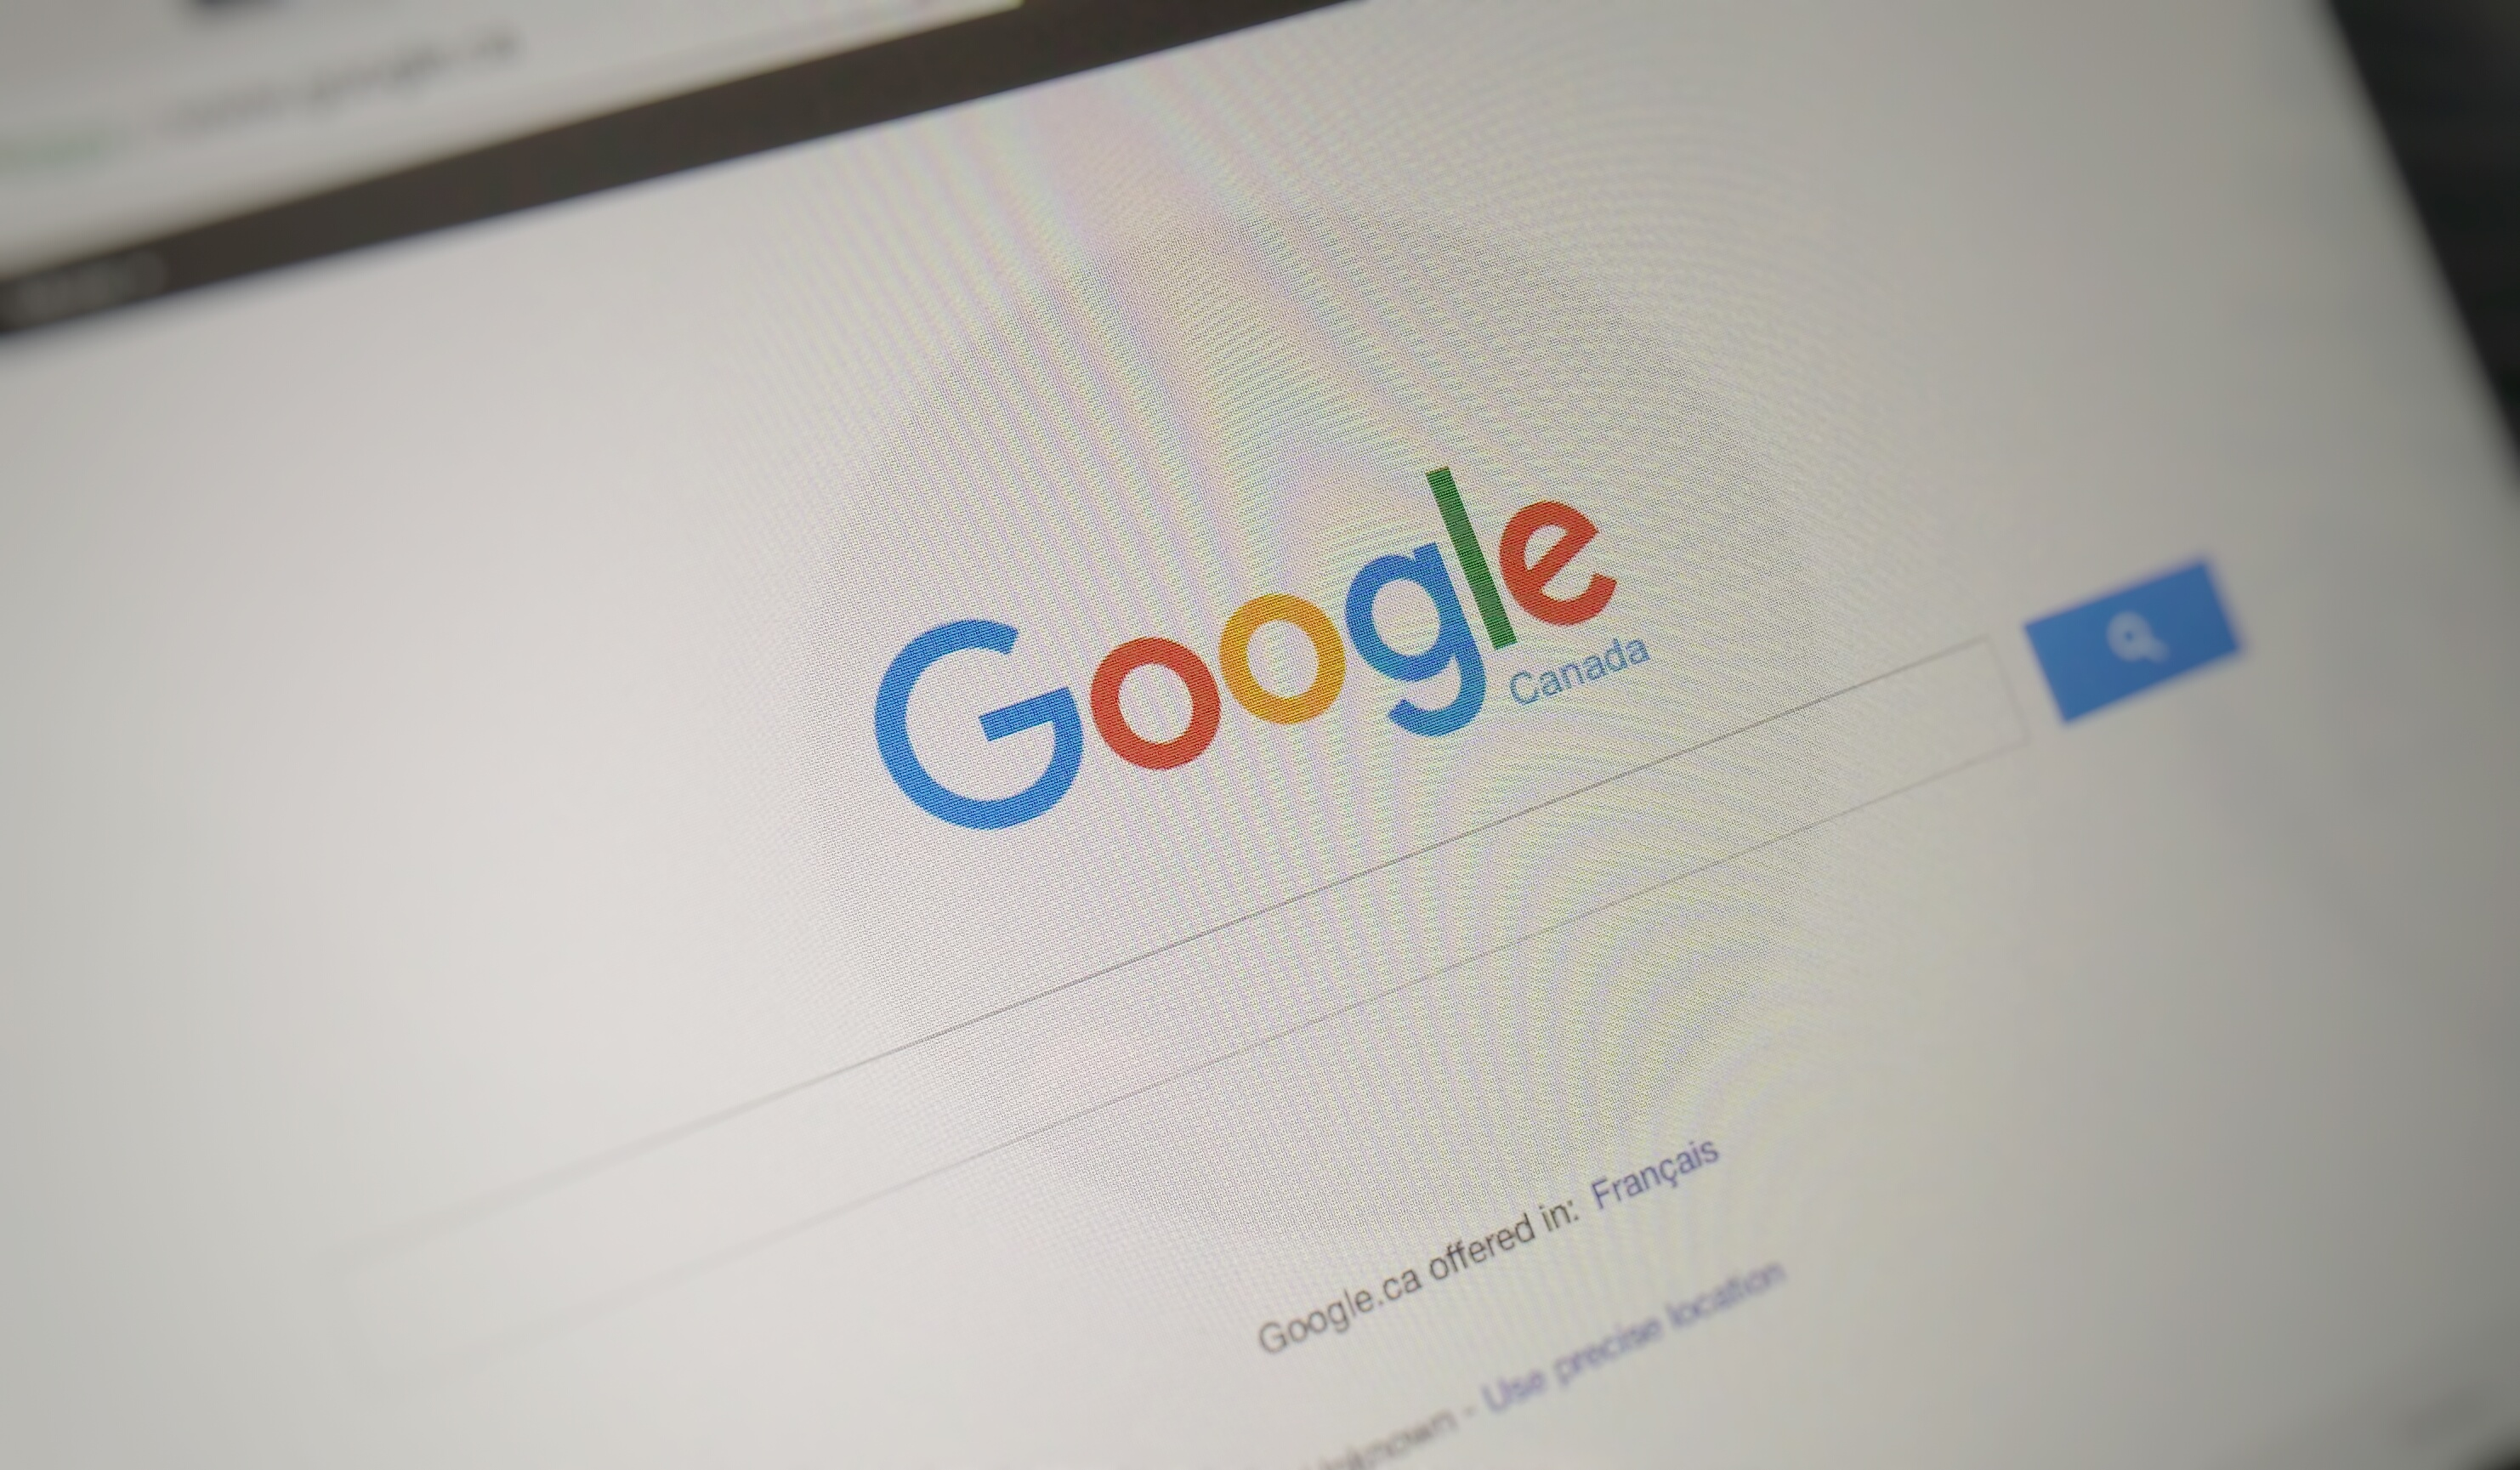 Google must block sites of company accused of stealing Canadian tech